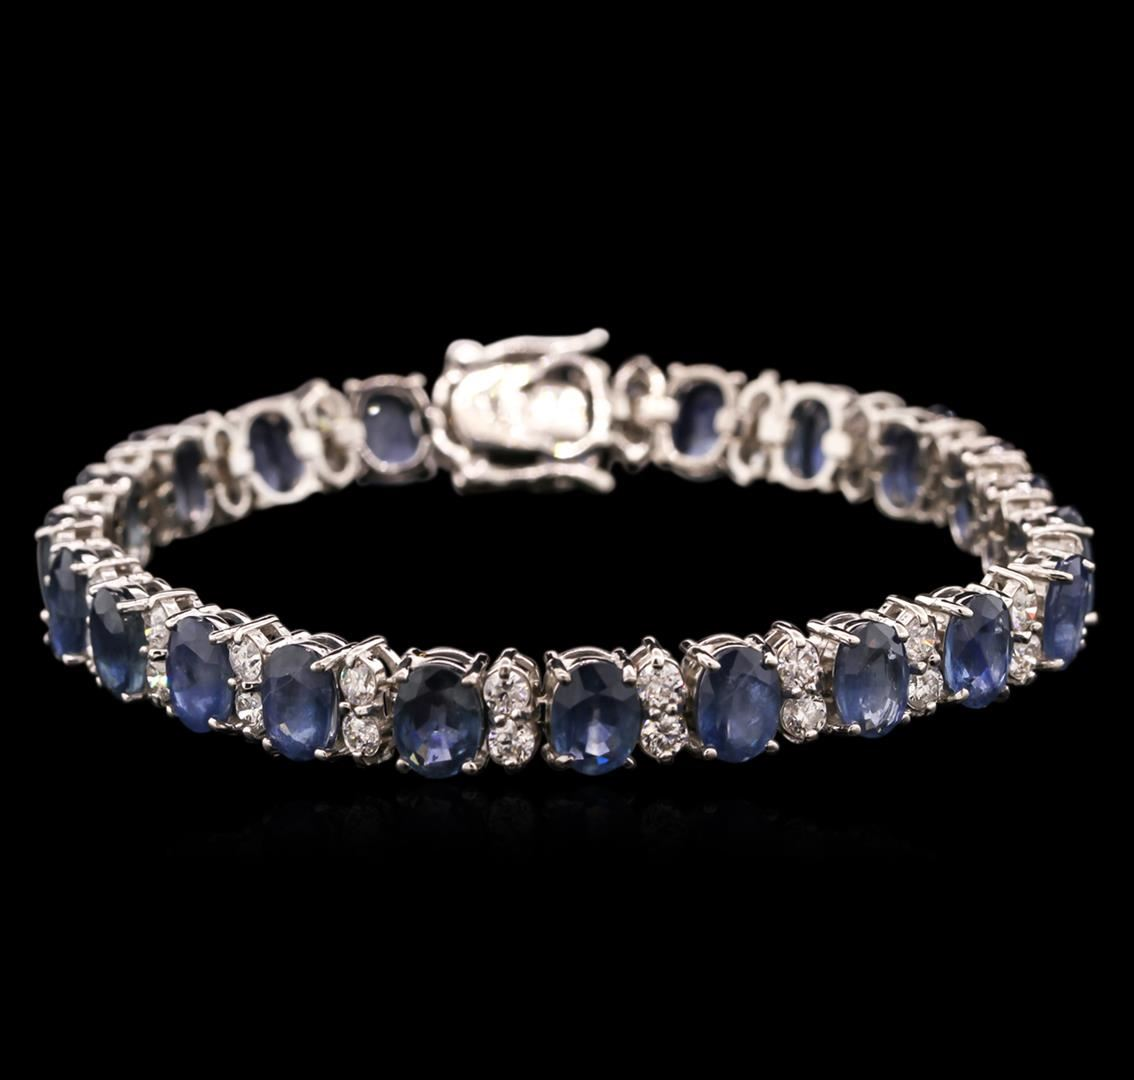 2200ctw Blue Sapphire And Diamond Bracelet  14kt White Gold. Coin Pendant. Child Rings. Baguette Eternity Band. Grey Market Watches. Twist Engagement Rings. Mens Diamond Necklace Chains. Puzzle Necklace. 11 Carat Diamond